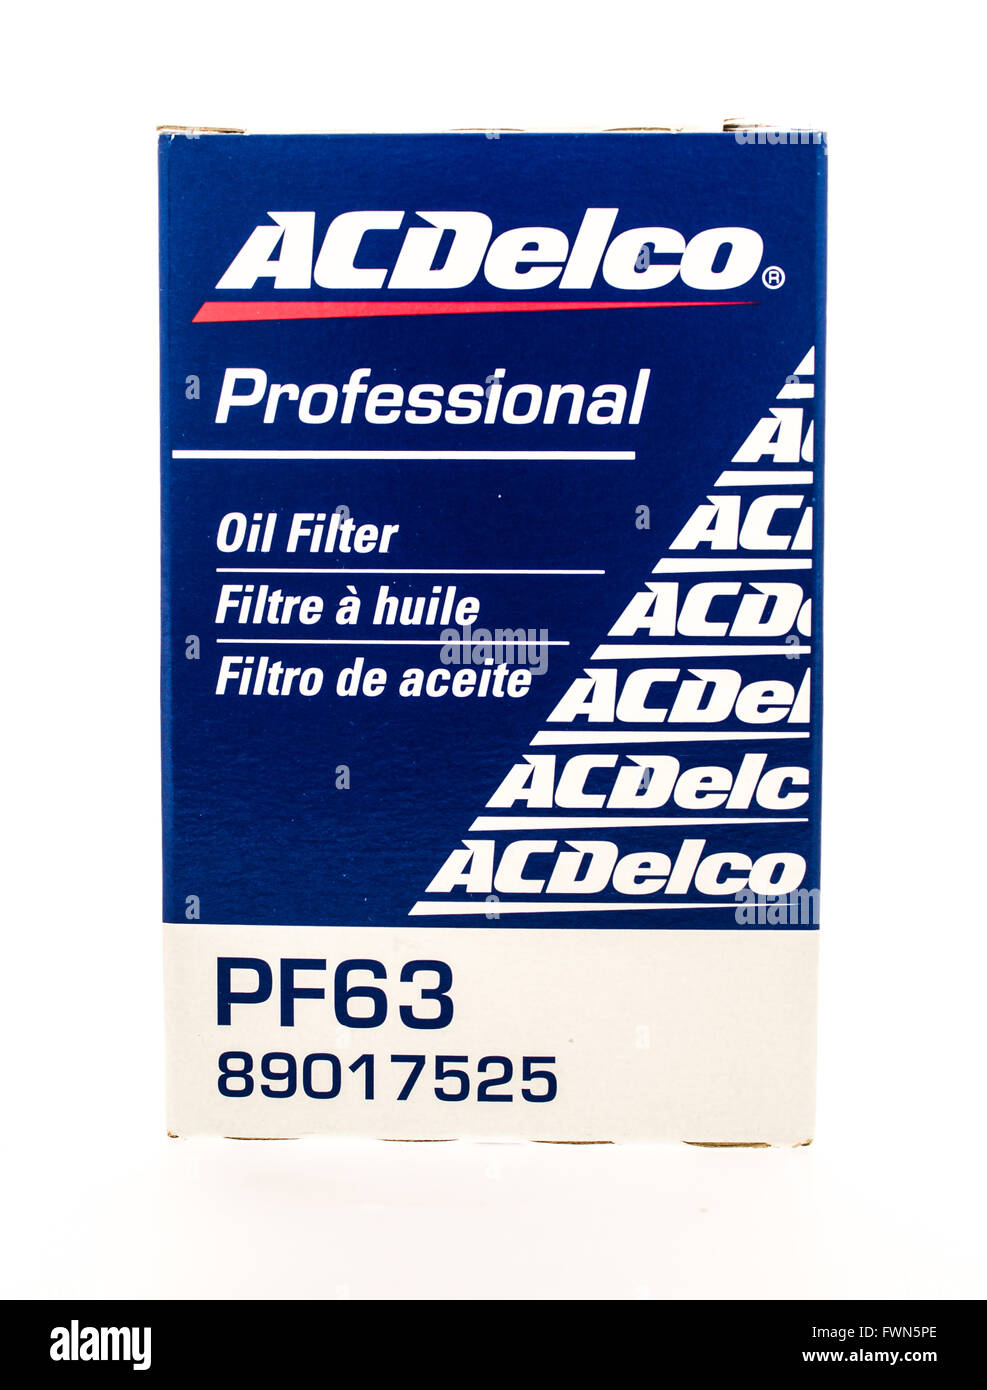 Winneconne, WI - 23 August 2015:  Box of an ACDELCO oil flter. - Stock Image